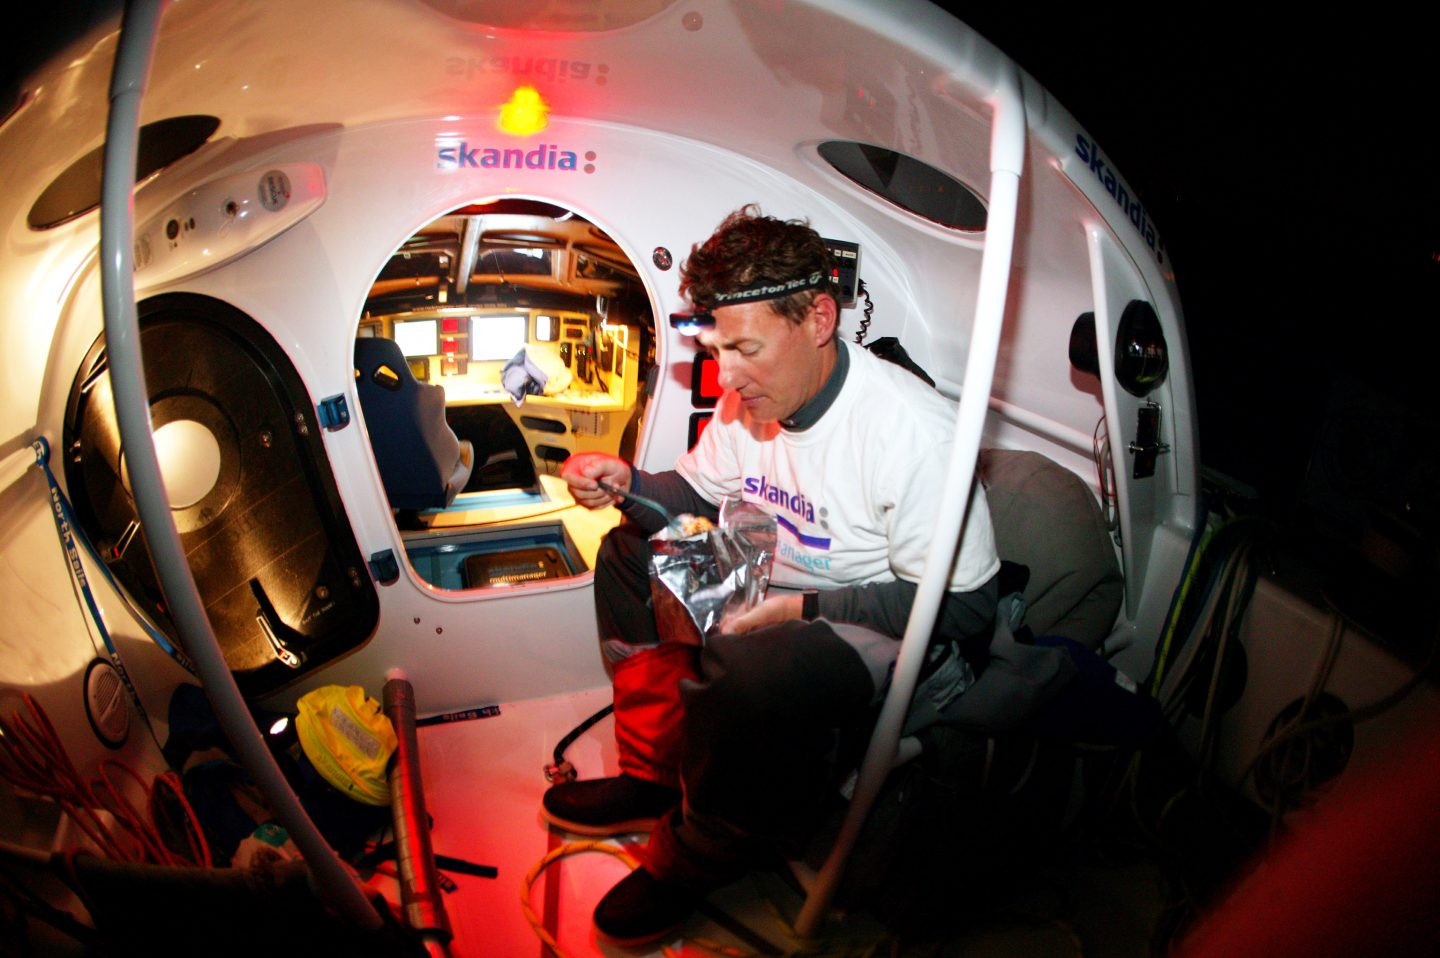 A sailor wearing a headlamp eating on board of his sailboat. Nick Moloney, sailing, career, motivation, preparation, success, mindset, GamePlan A